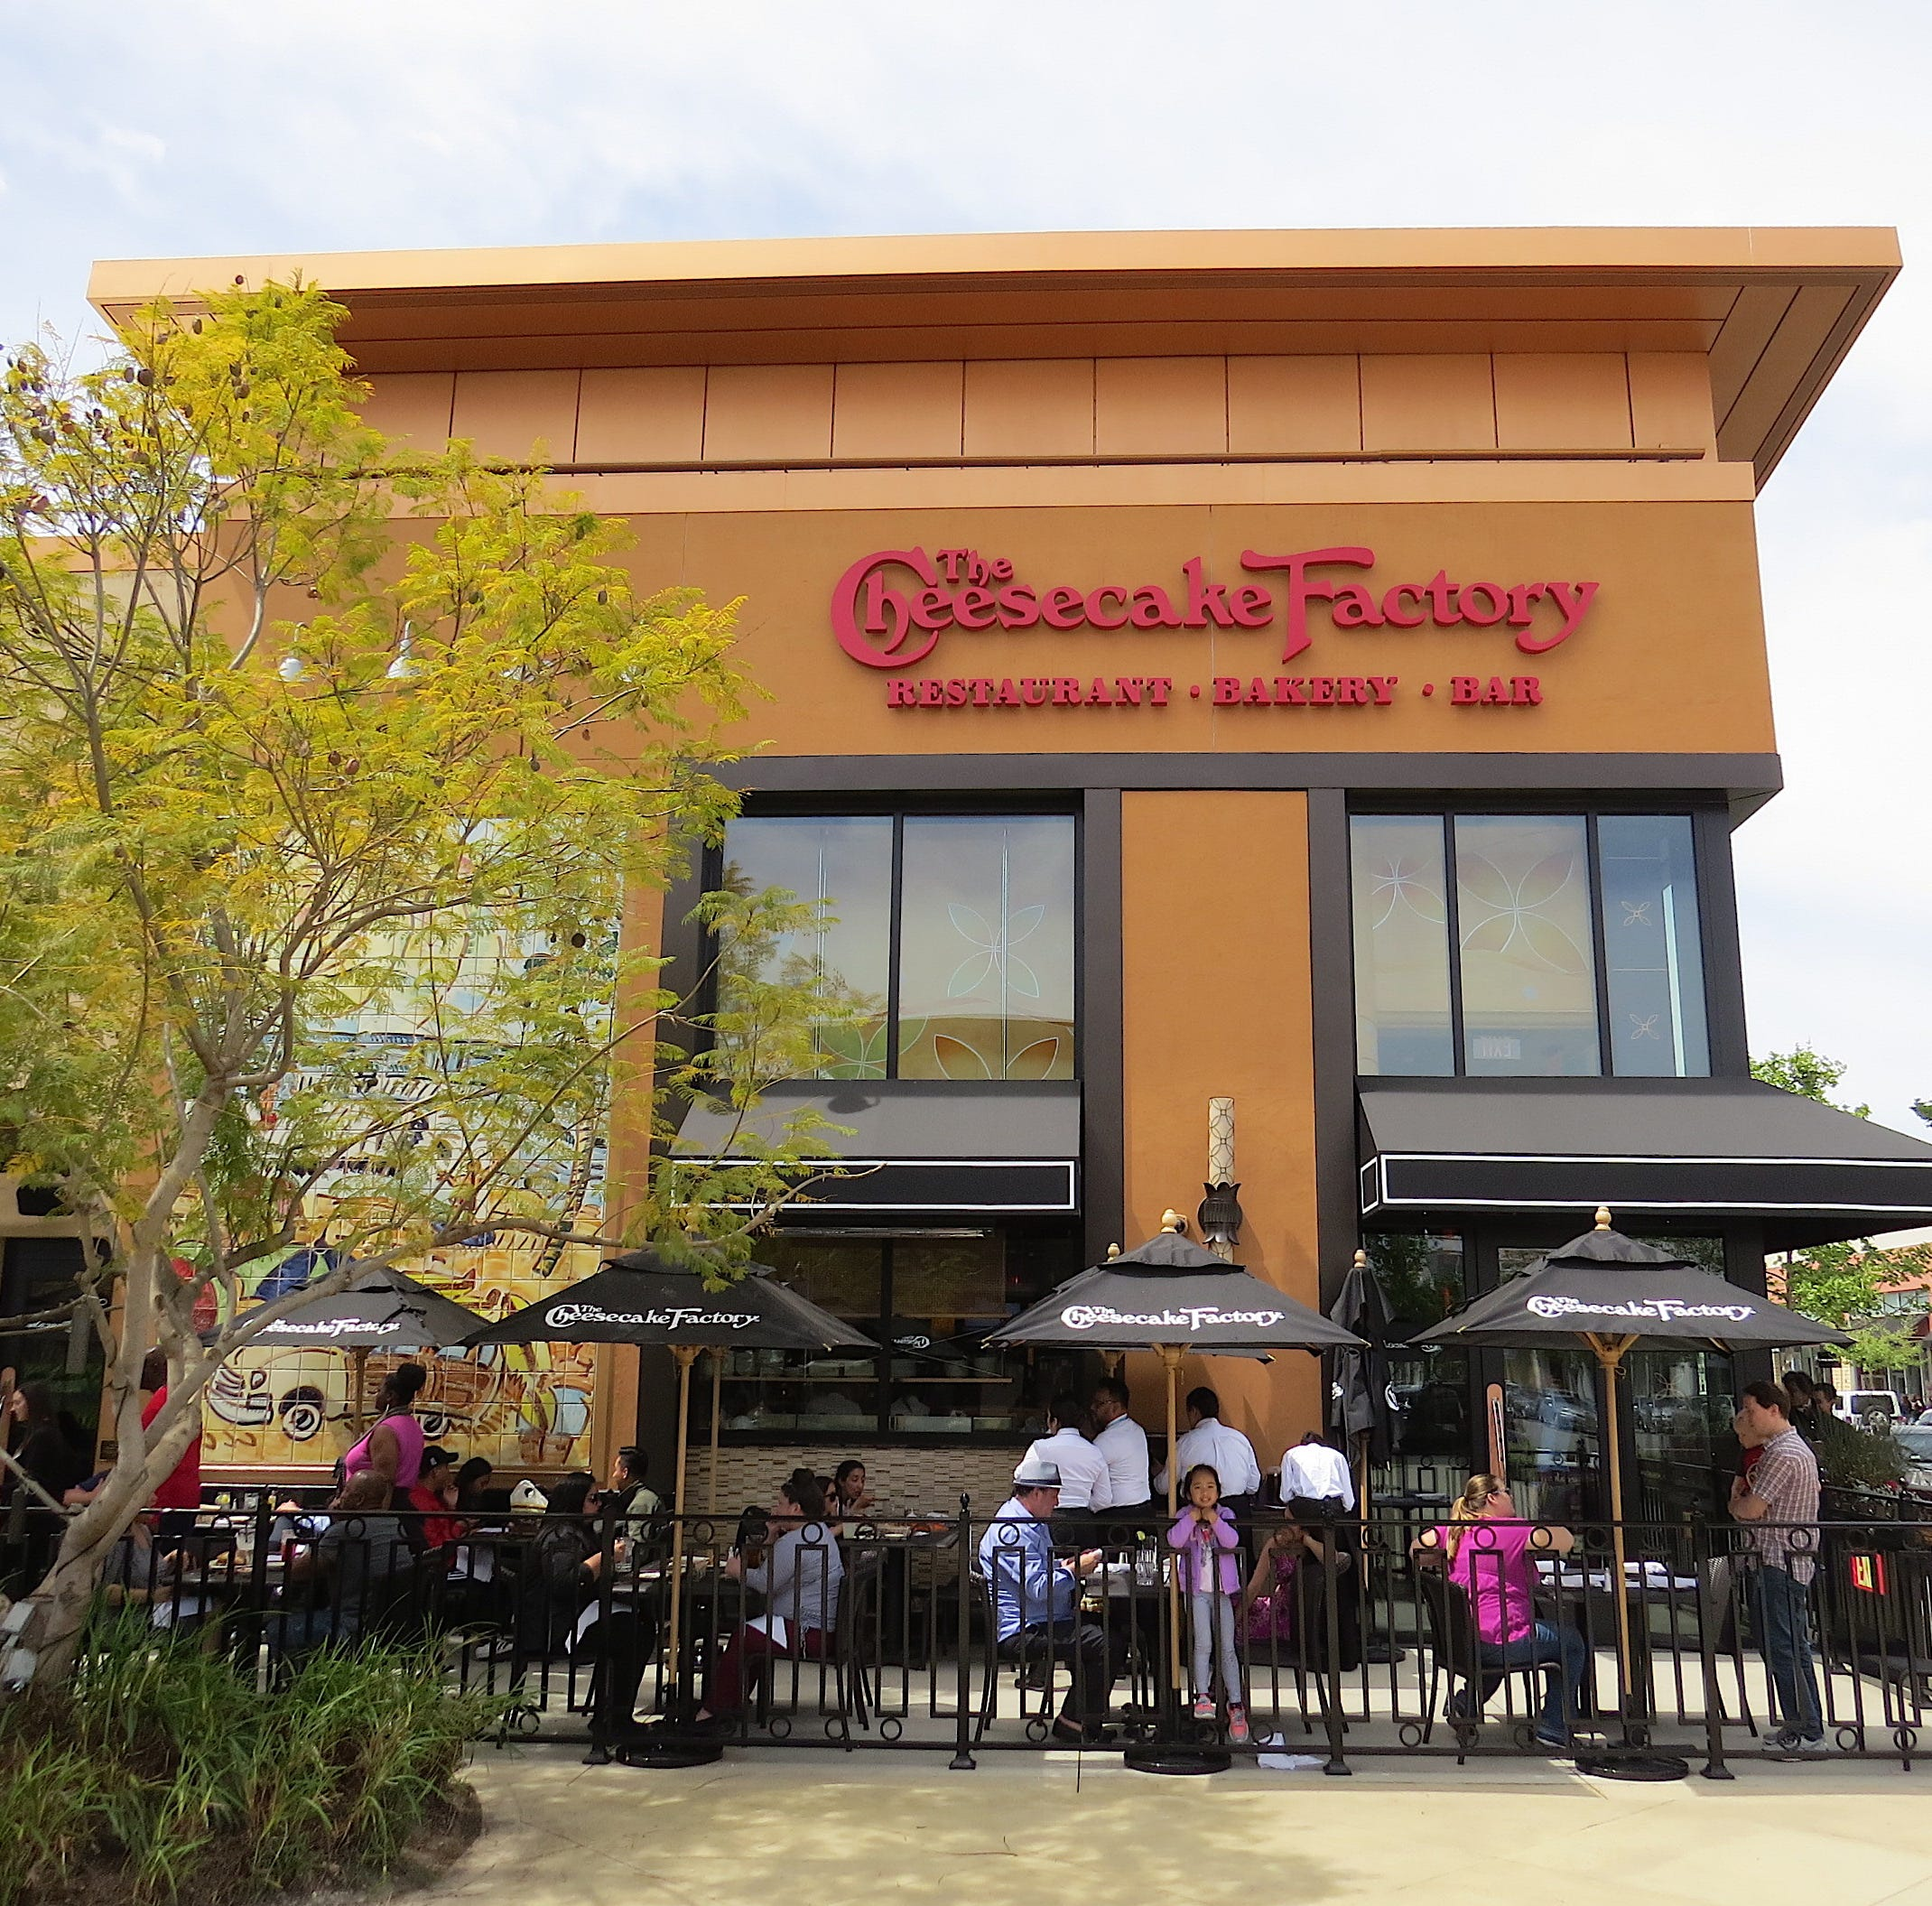 Open and shut: Cheesecake Factory offers sneak peek at Oxnard location